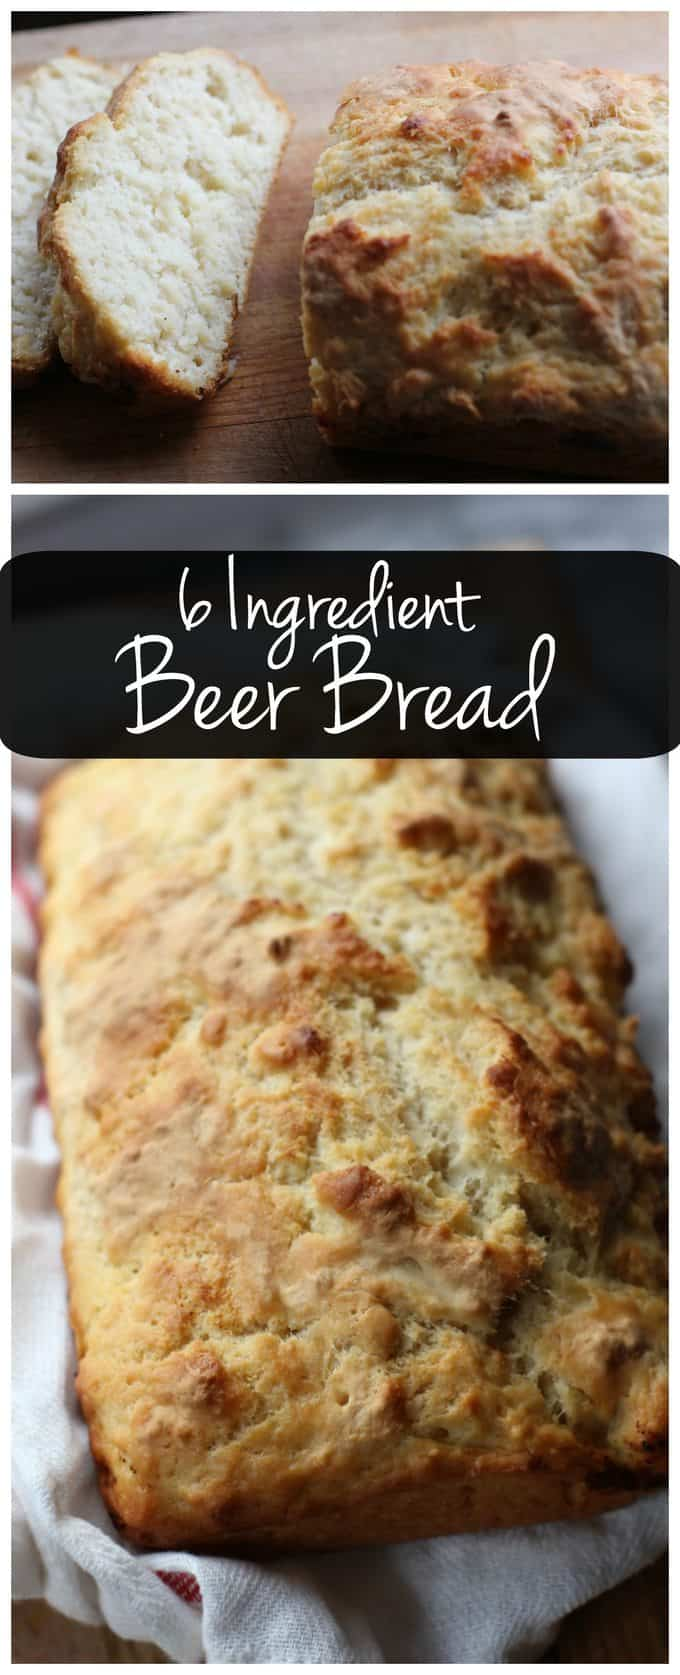 This 6-ingredient beer bread recipe is so easy to make and it tastes amazing! You can have fresh bread in no time.